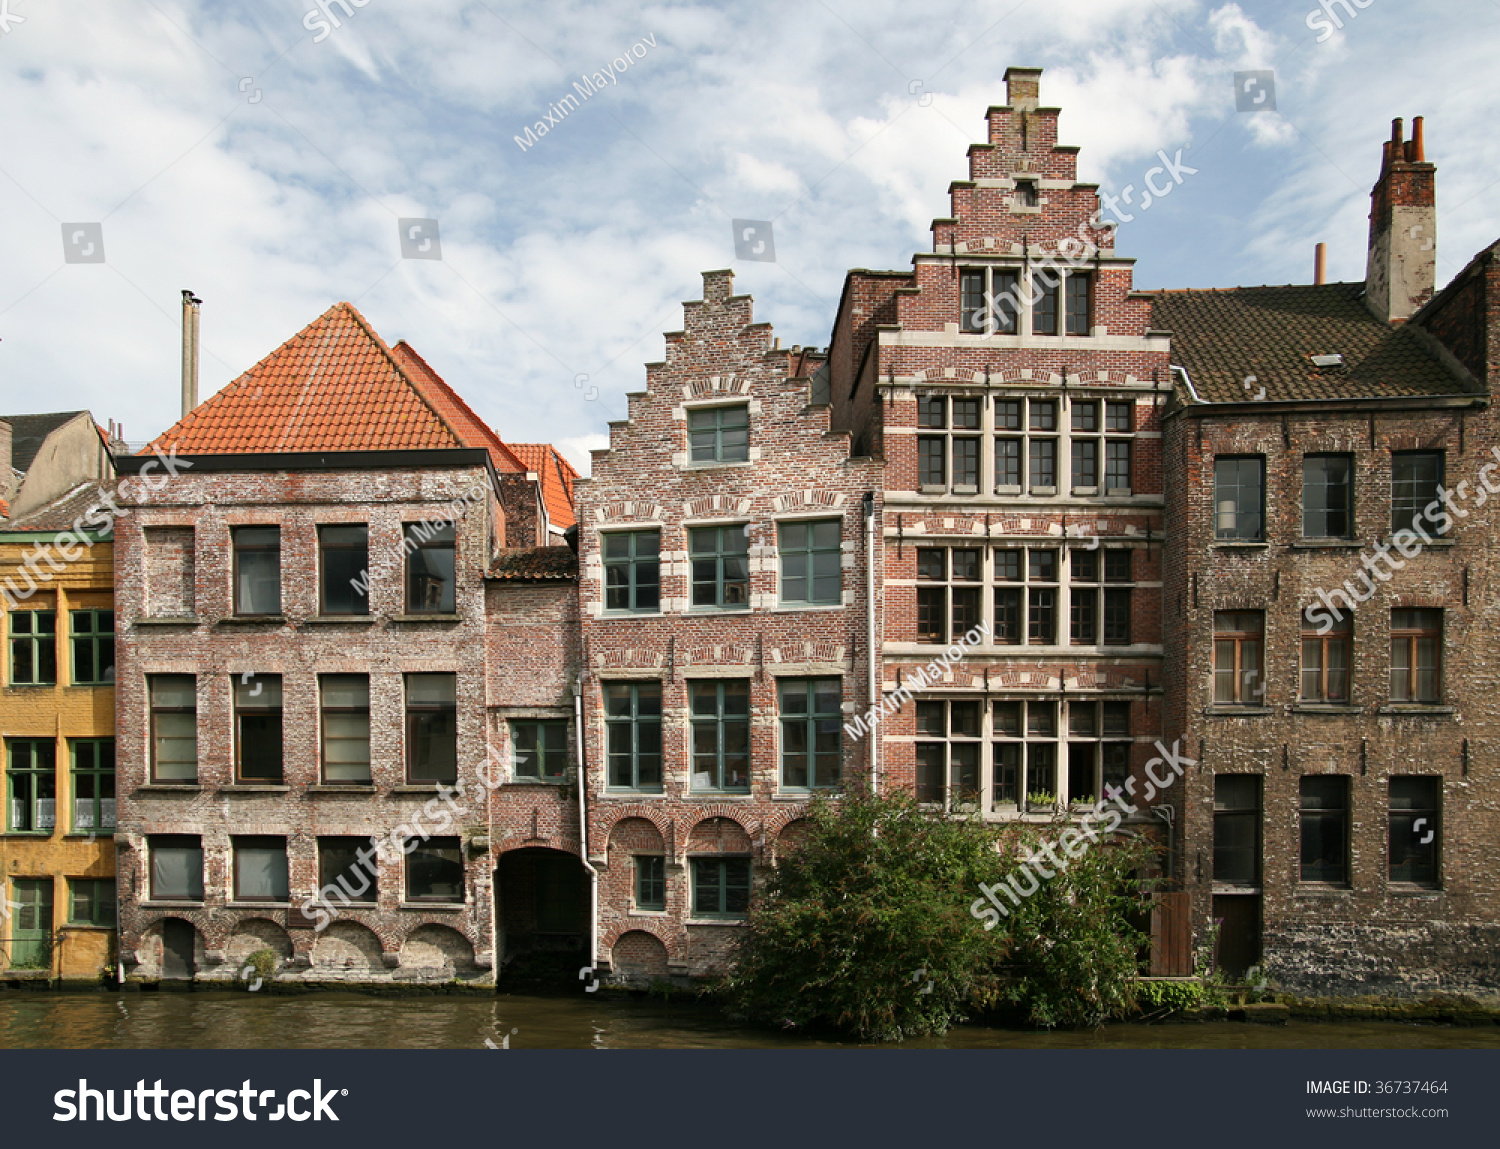 Uneven Traditional European Brick Houses On The Bank Of